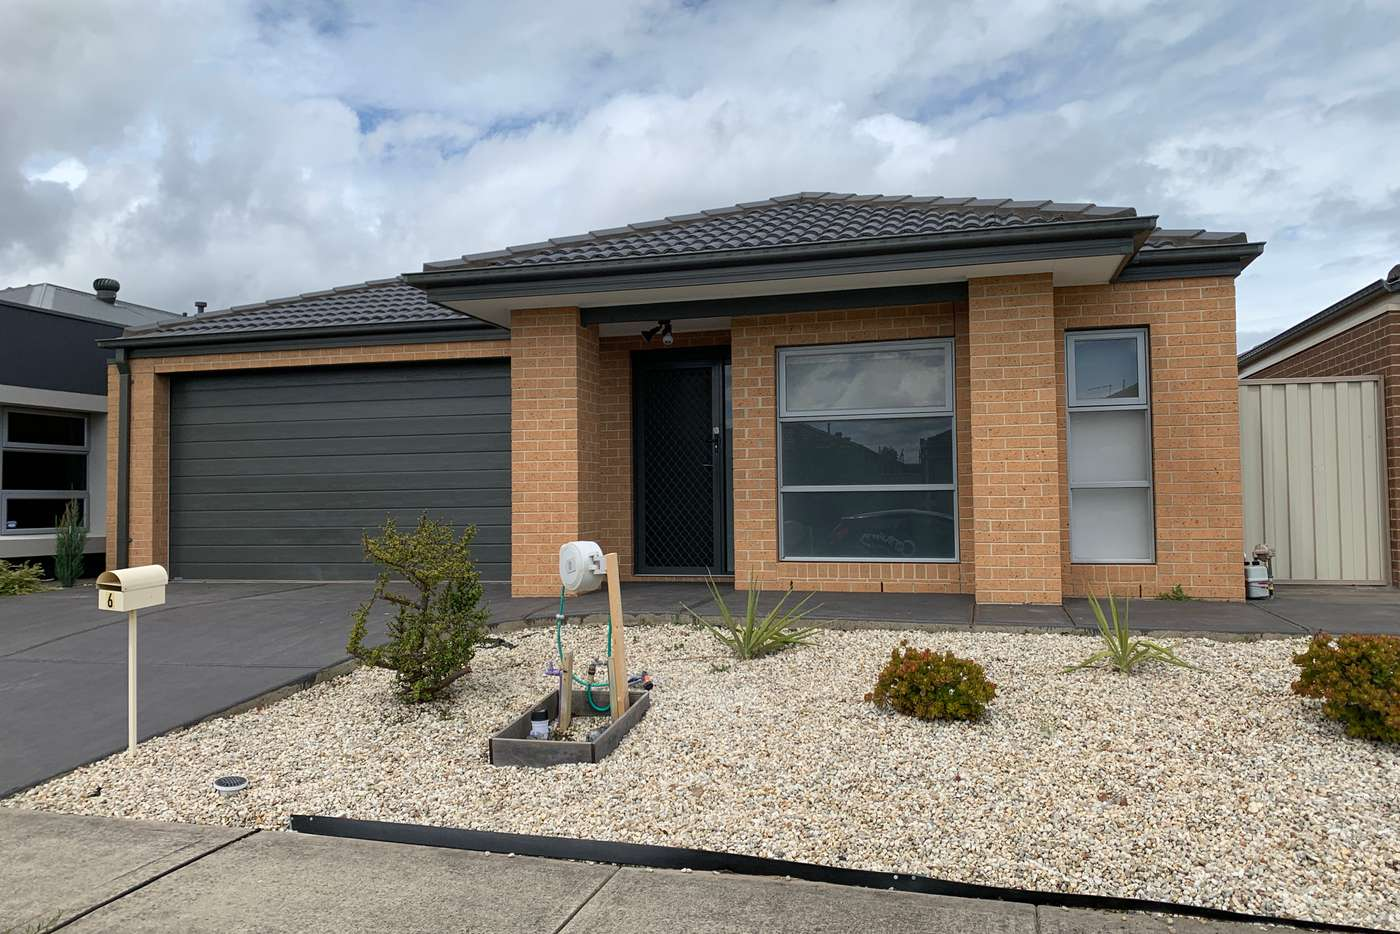 Main view of Homely house listing, 6 Cockatoo Road, Pakenham VIC 3810